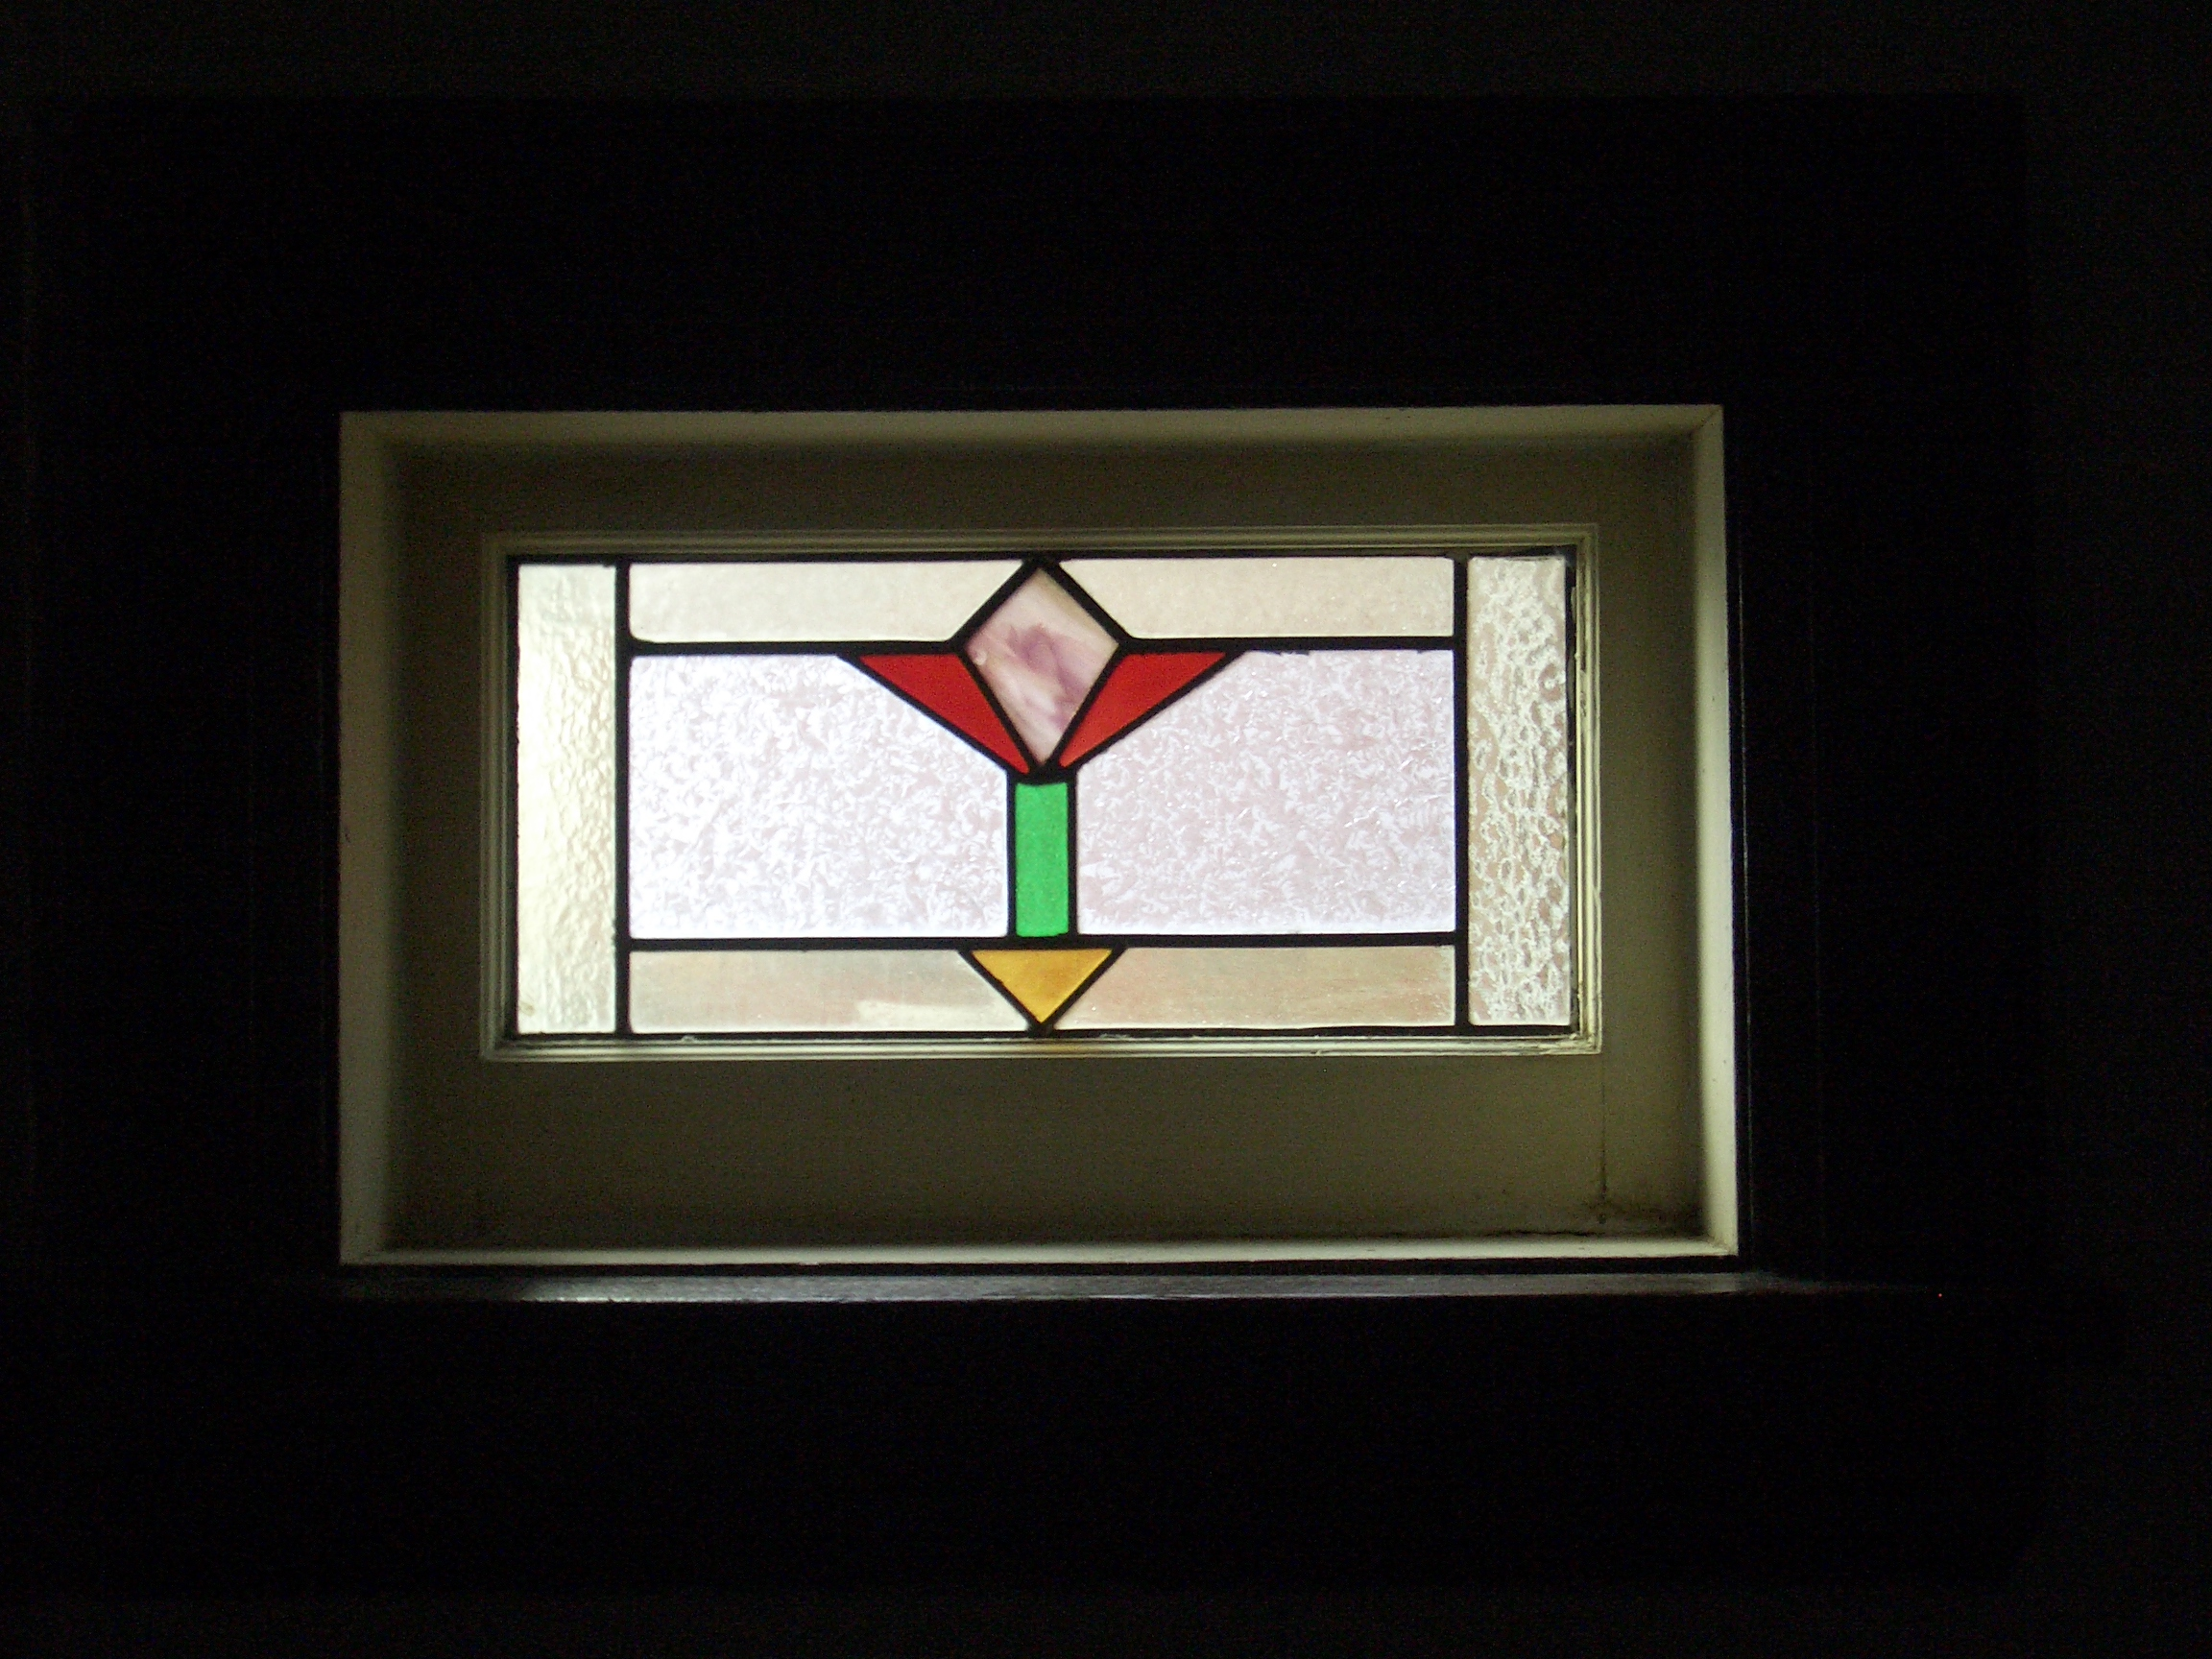 Art deco stained glass window image 500x375 pixels for Art deco glass windows